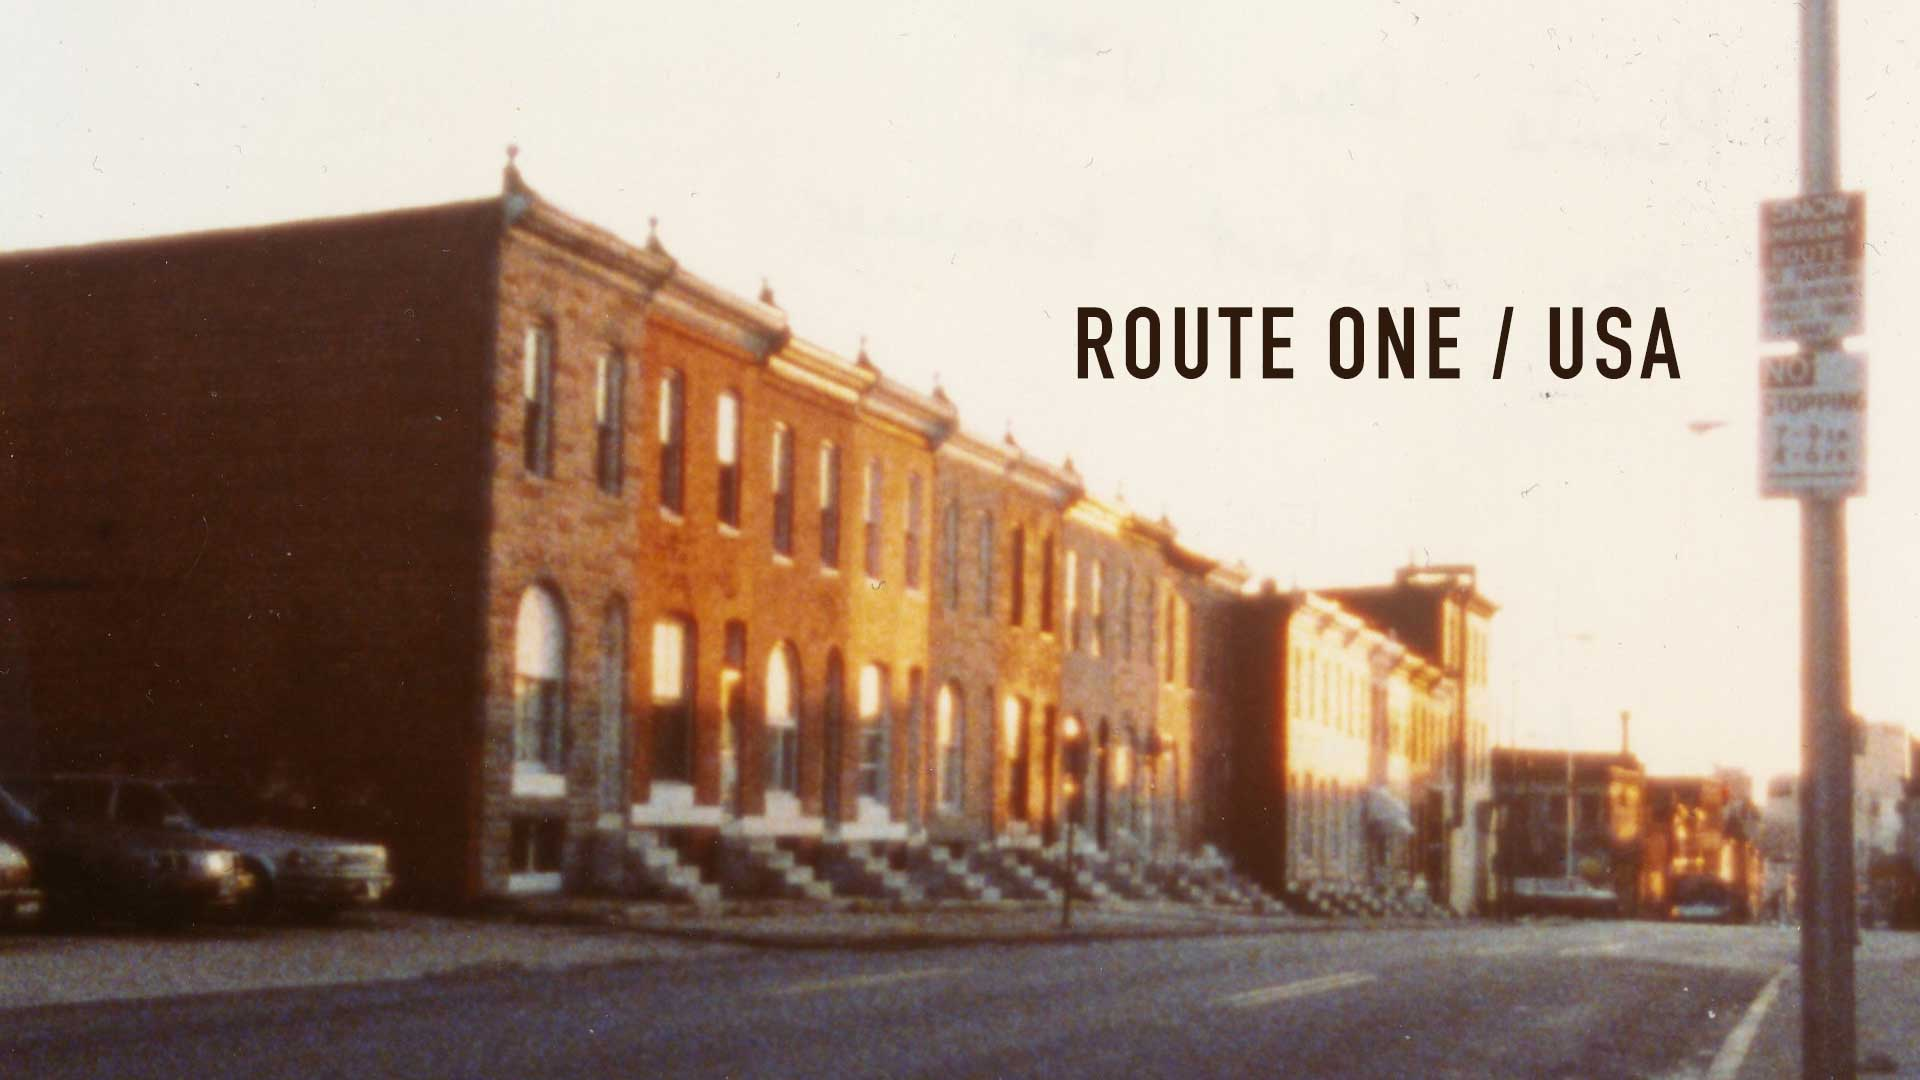 Route One/USA (part 1) - image